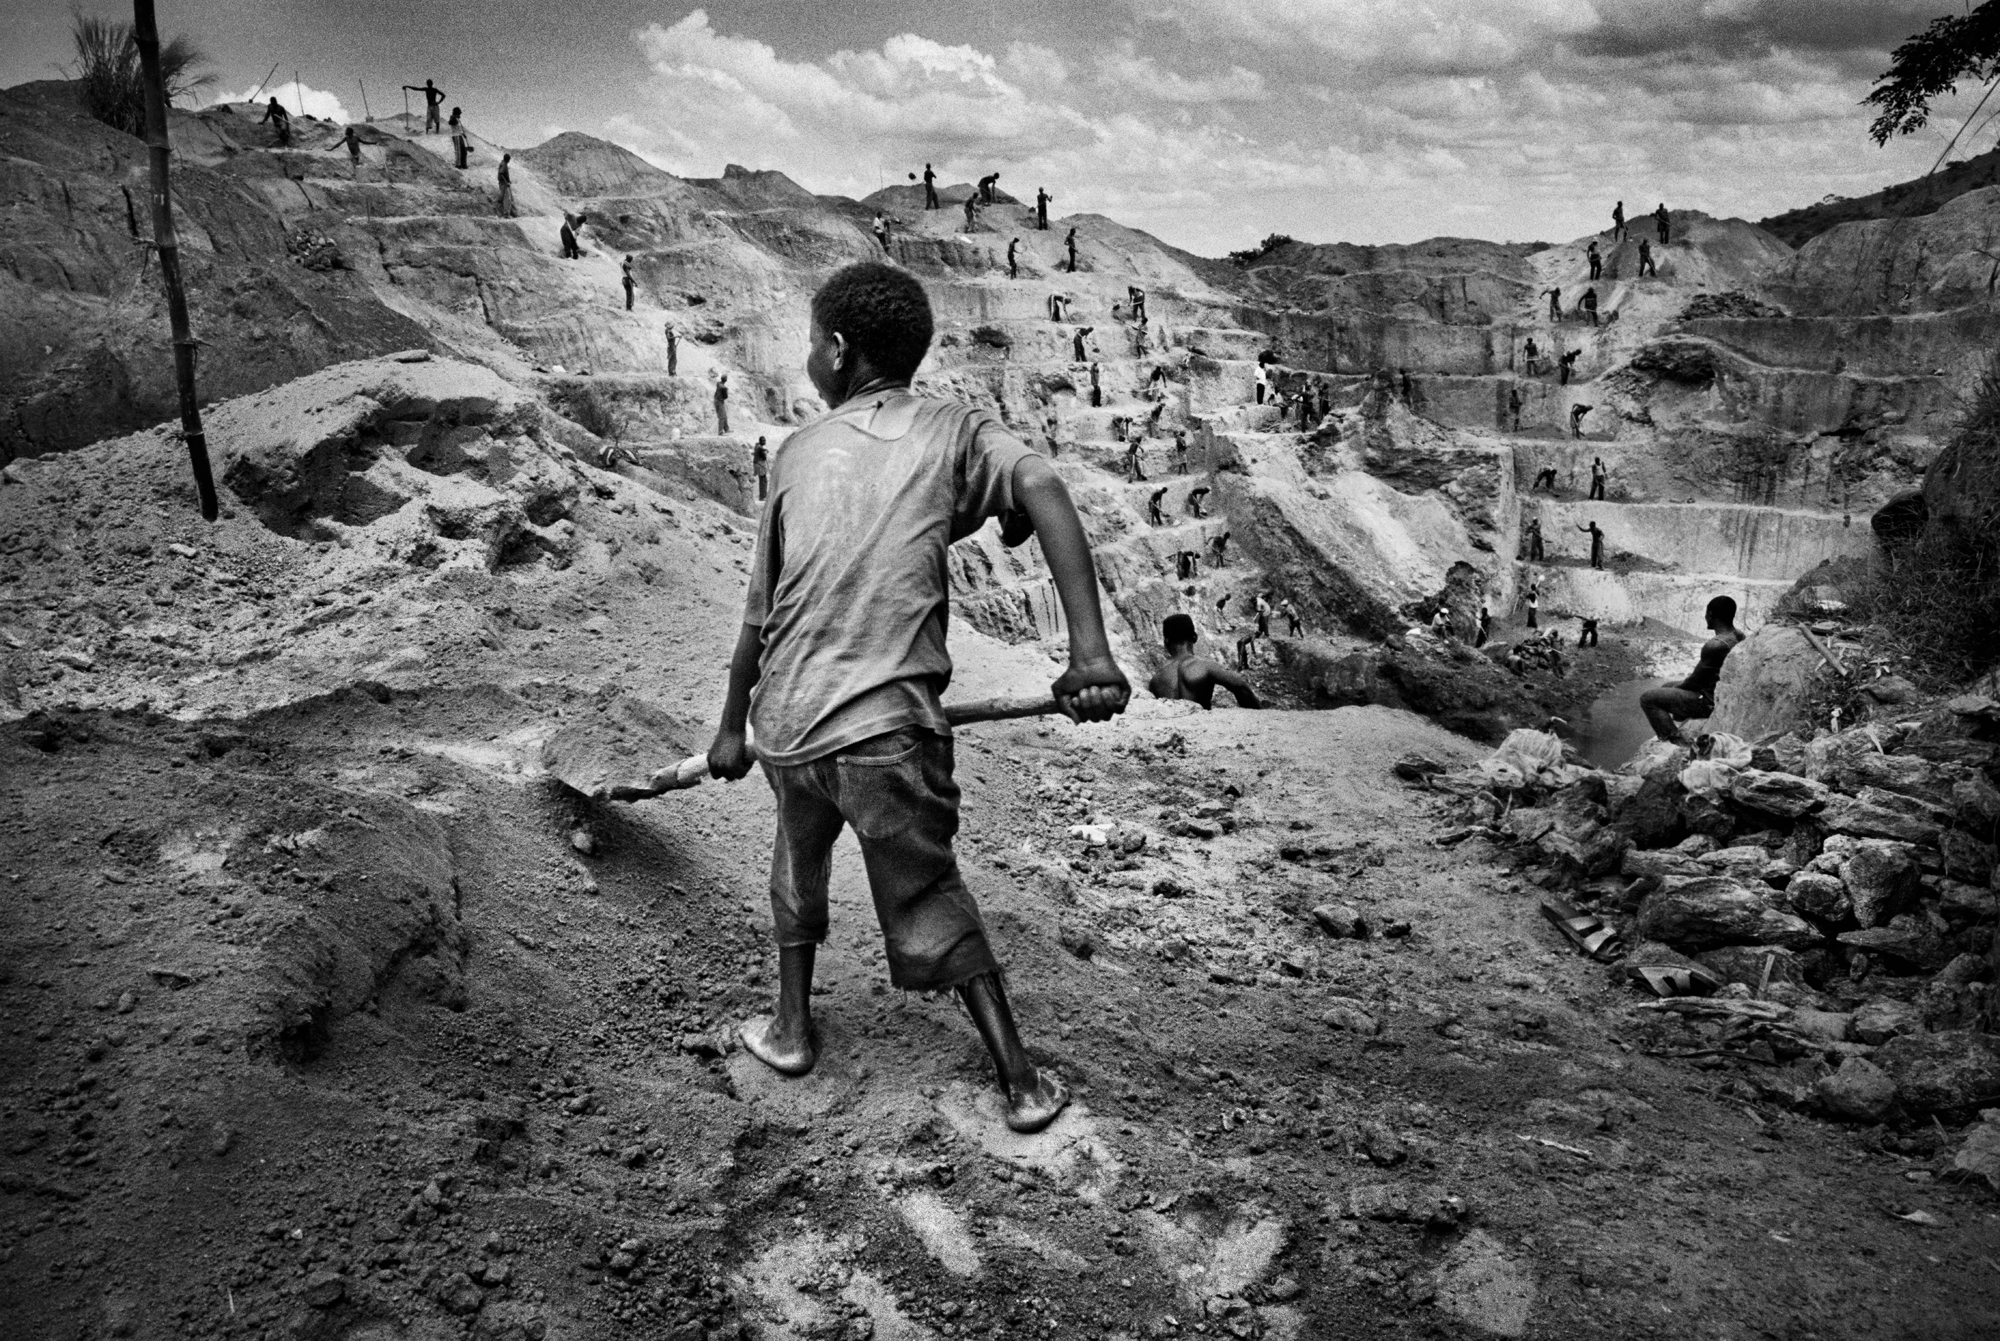 European Union reaches outline deal to stem flow of conflict minerals